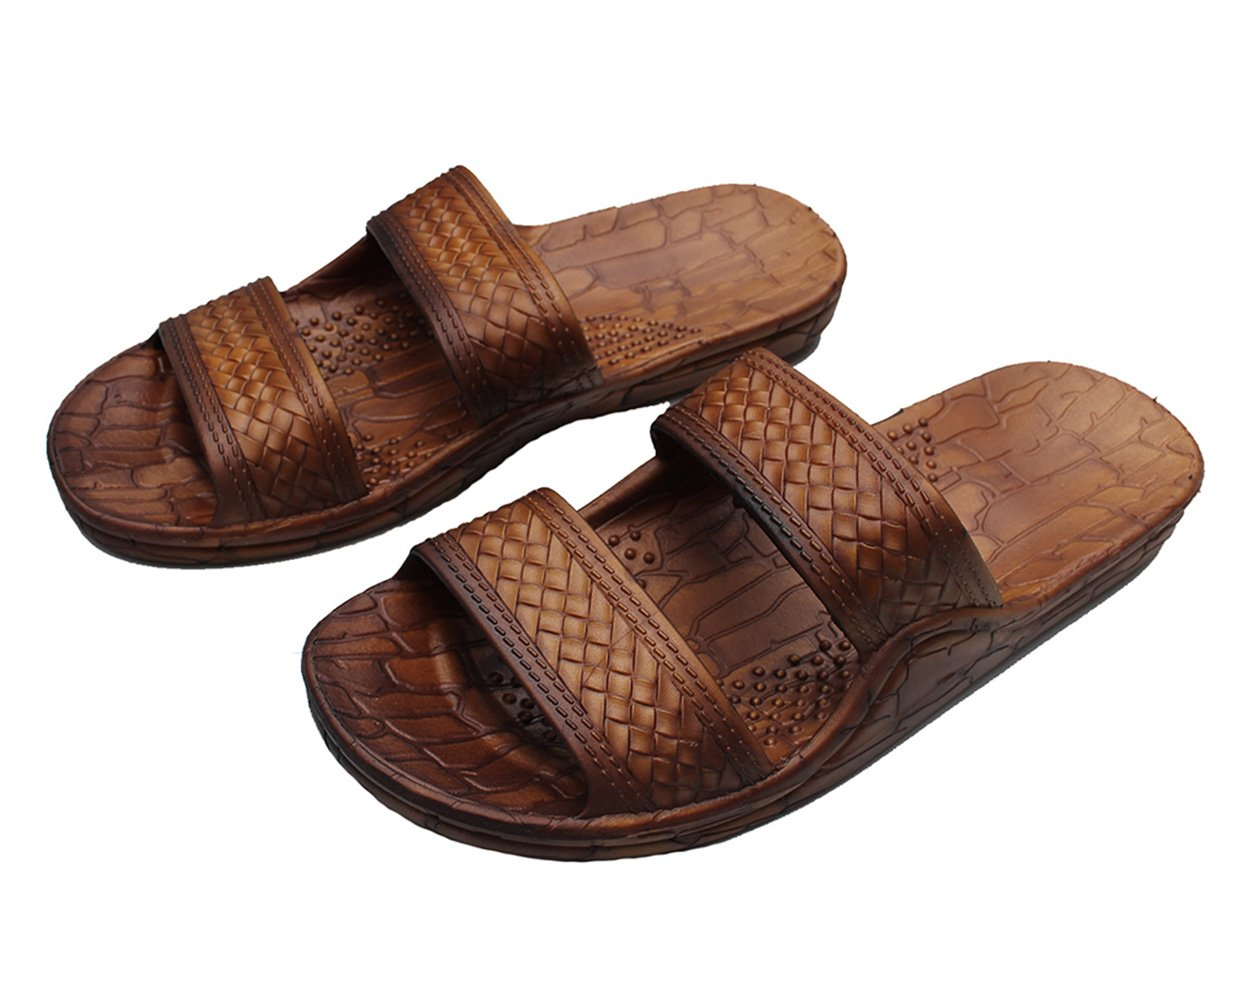 HawaiiImperial Sandals Hawaii Brown or Black Jesus Sandal Slipper For Men Women and Teen Classic Style